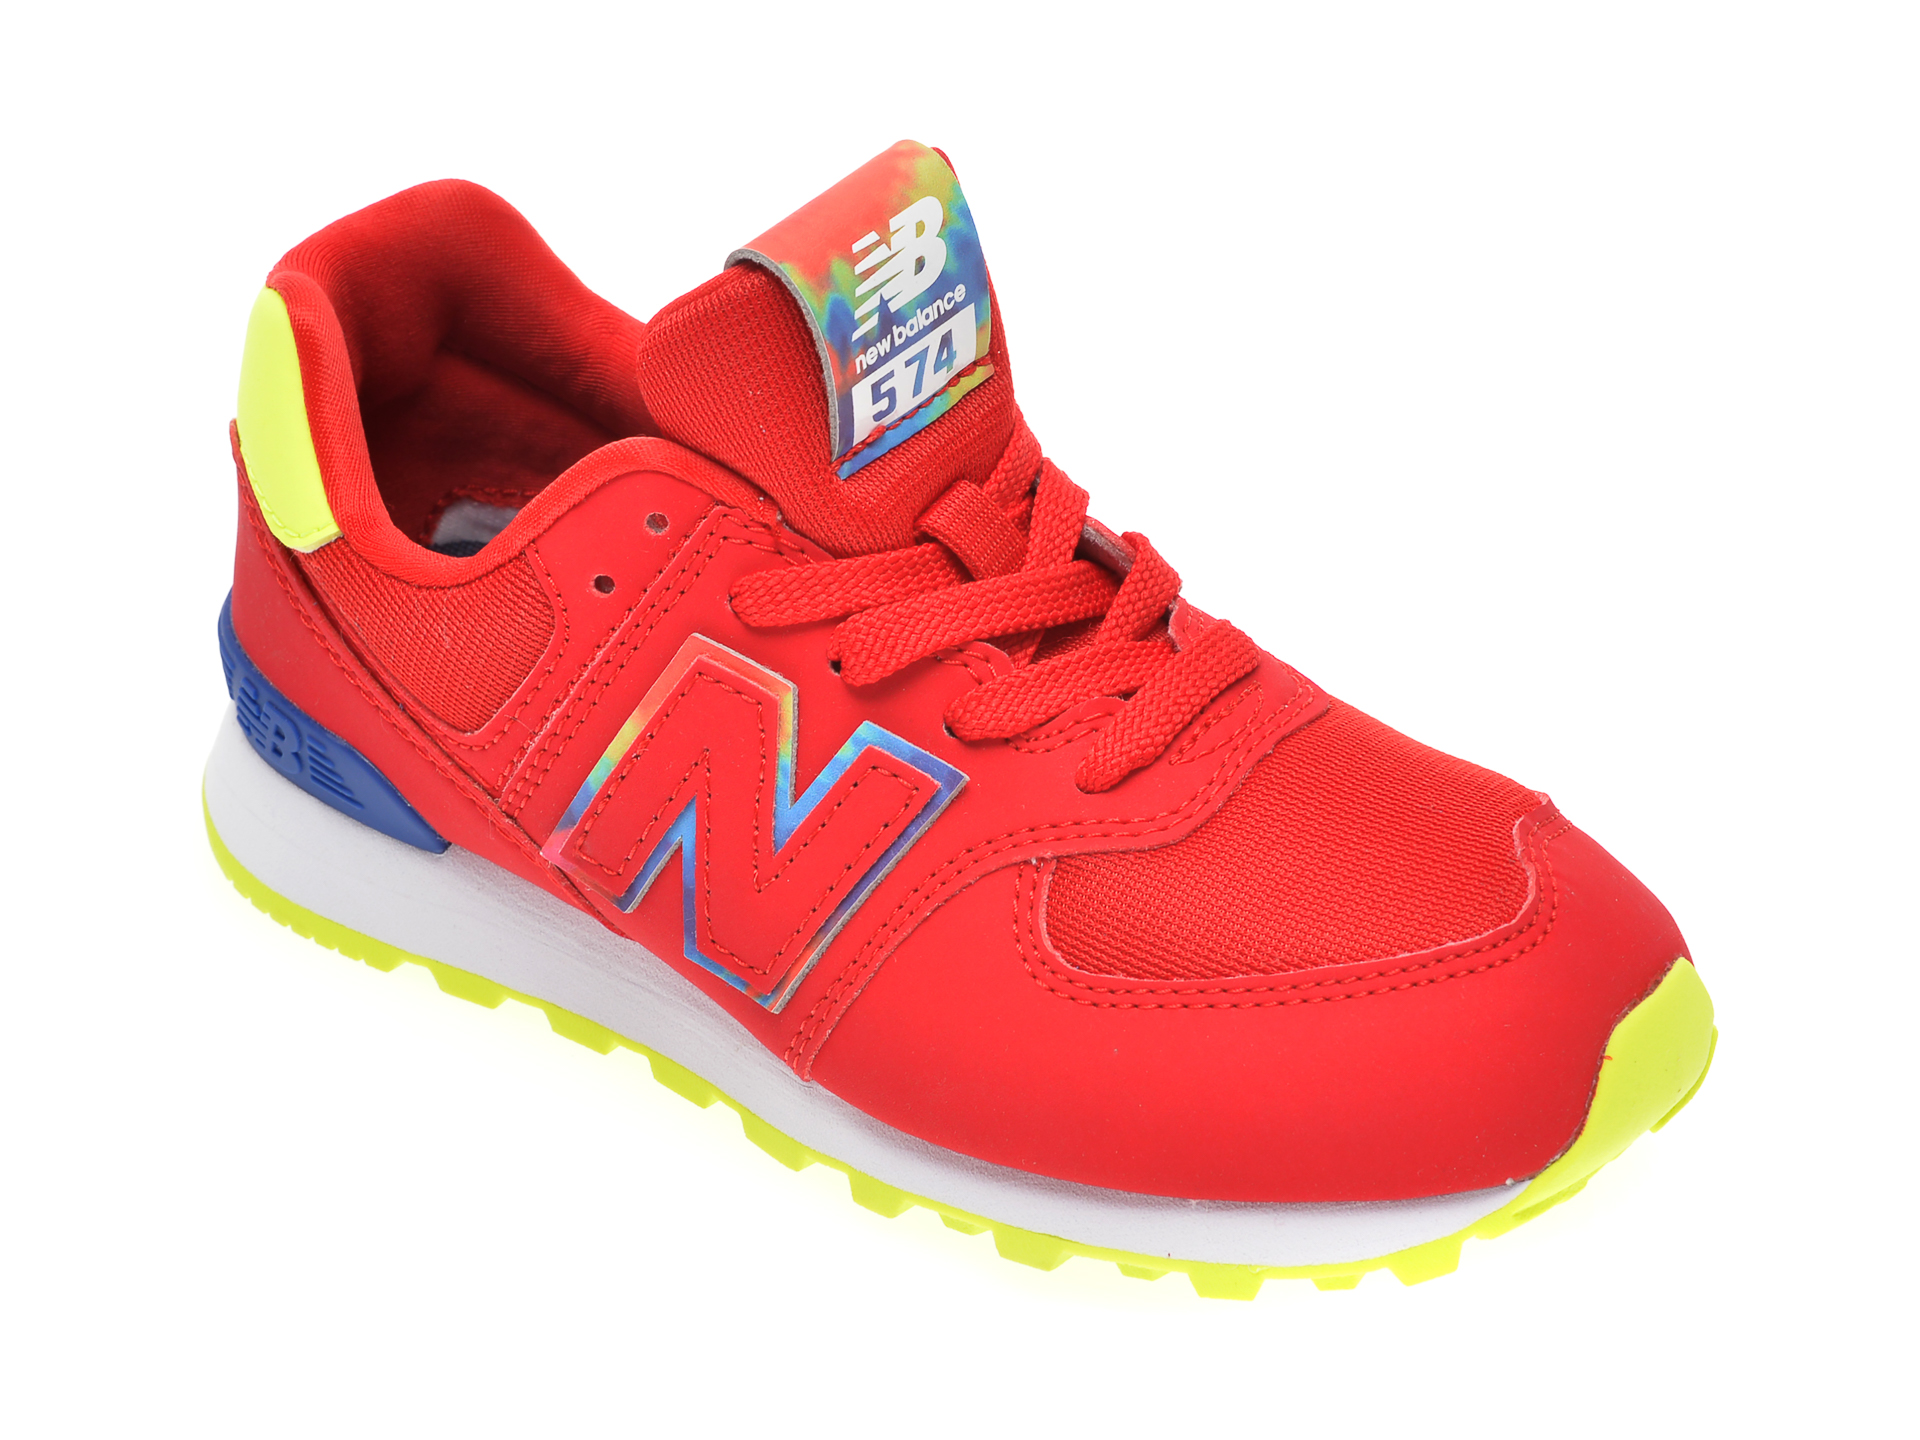 Pantofi sport NEW BALANCE rosii, PC574, din material textil si piele ecologica